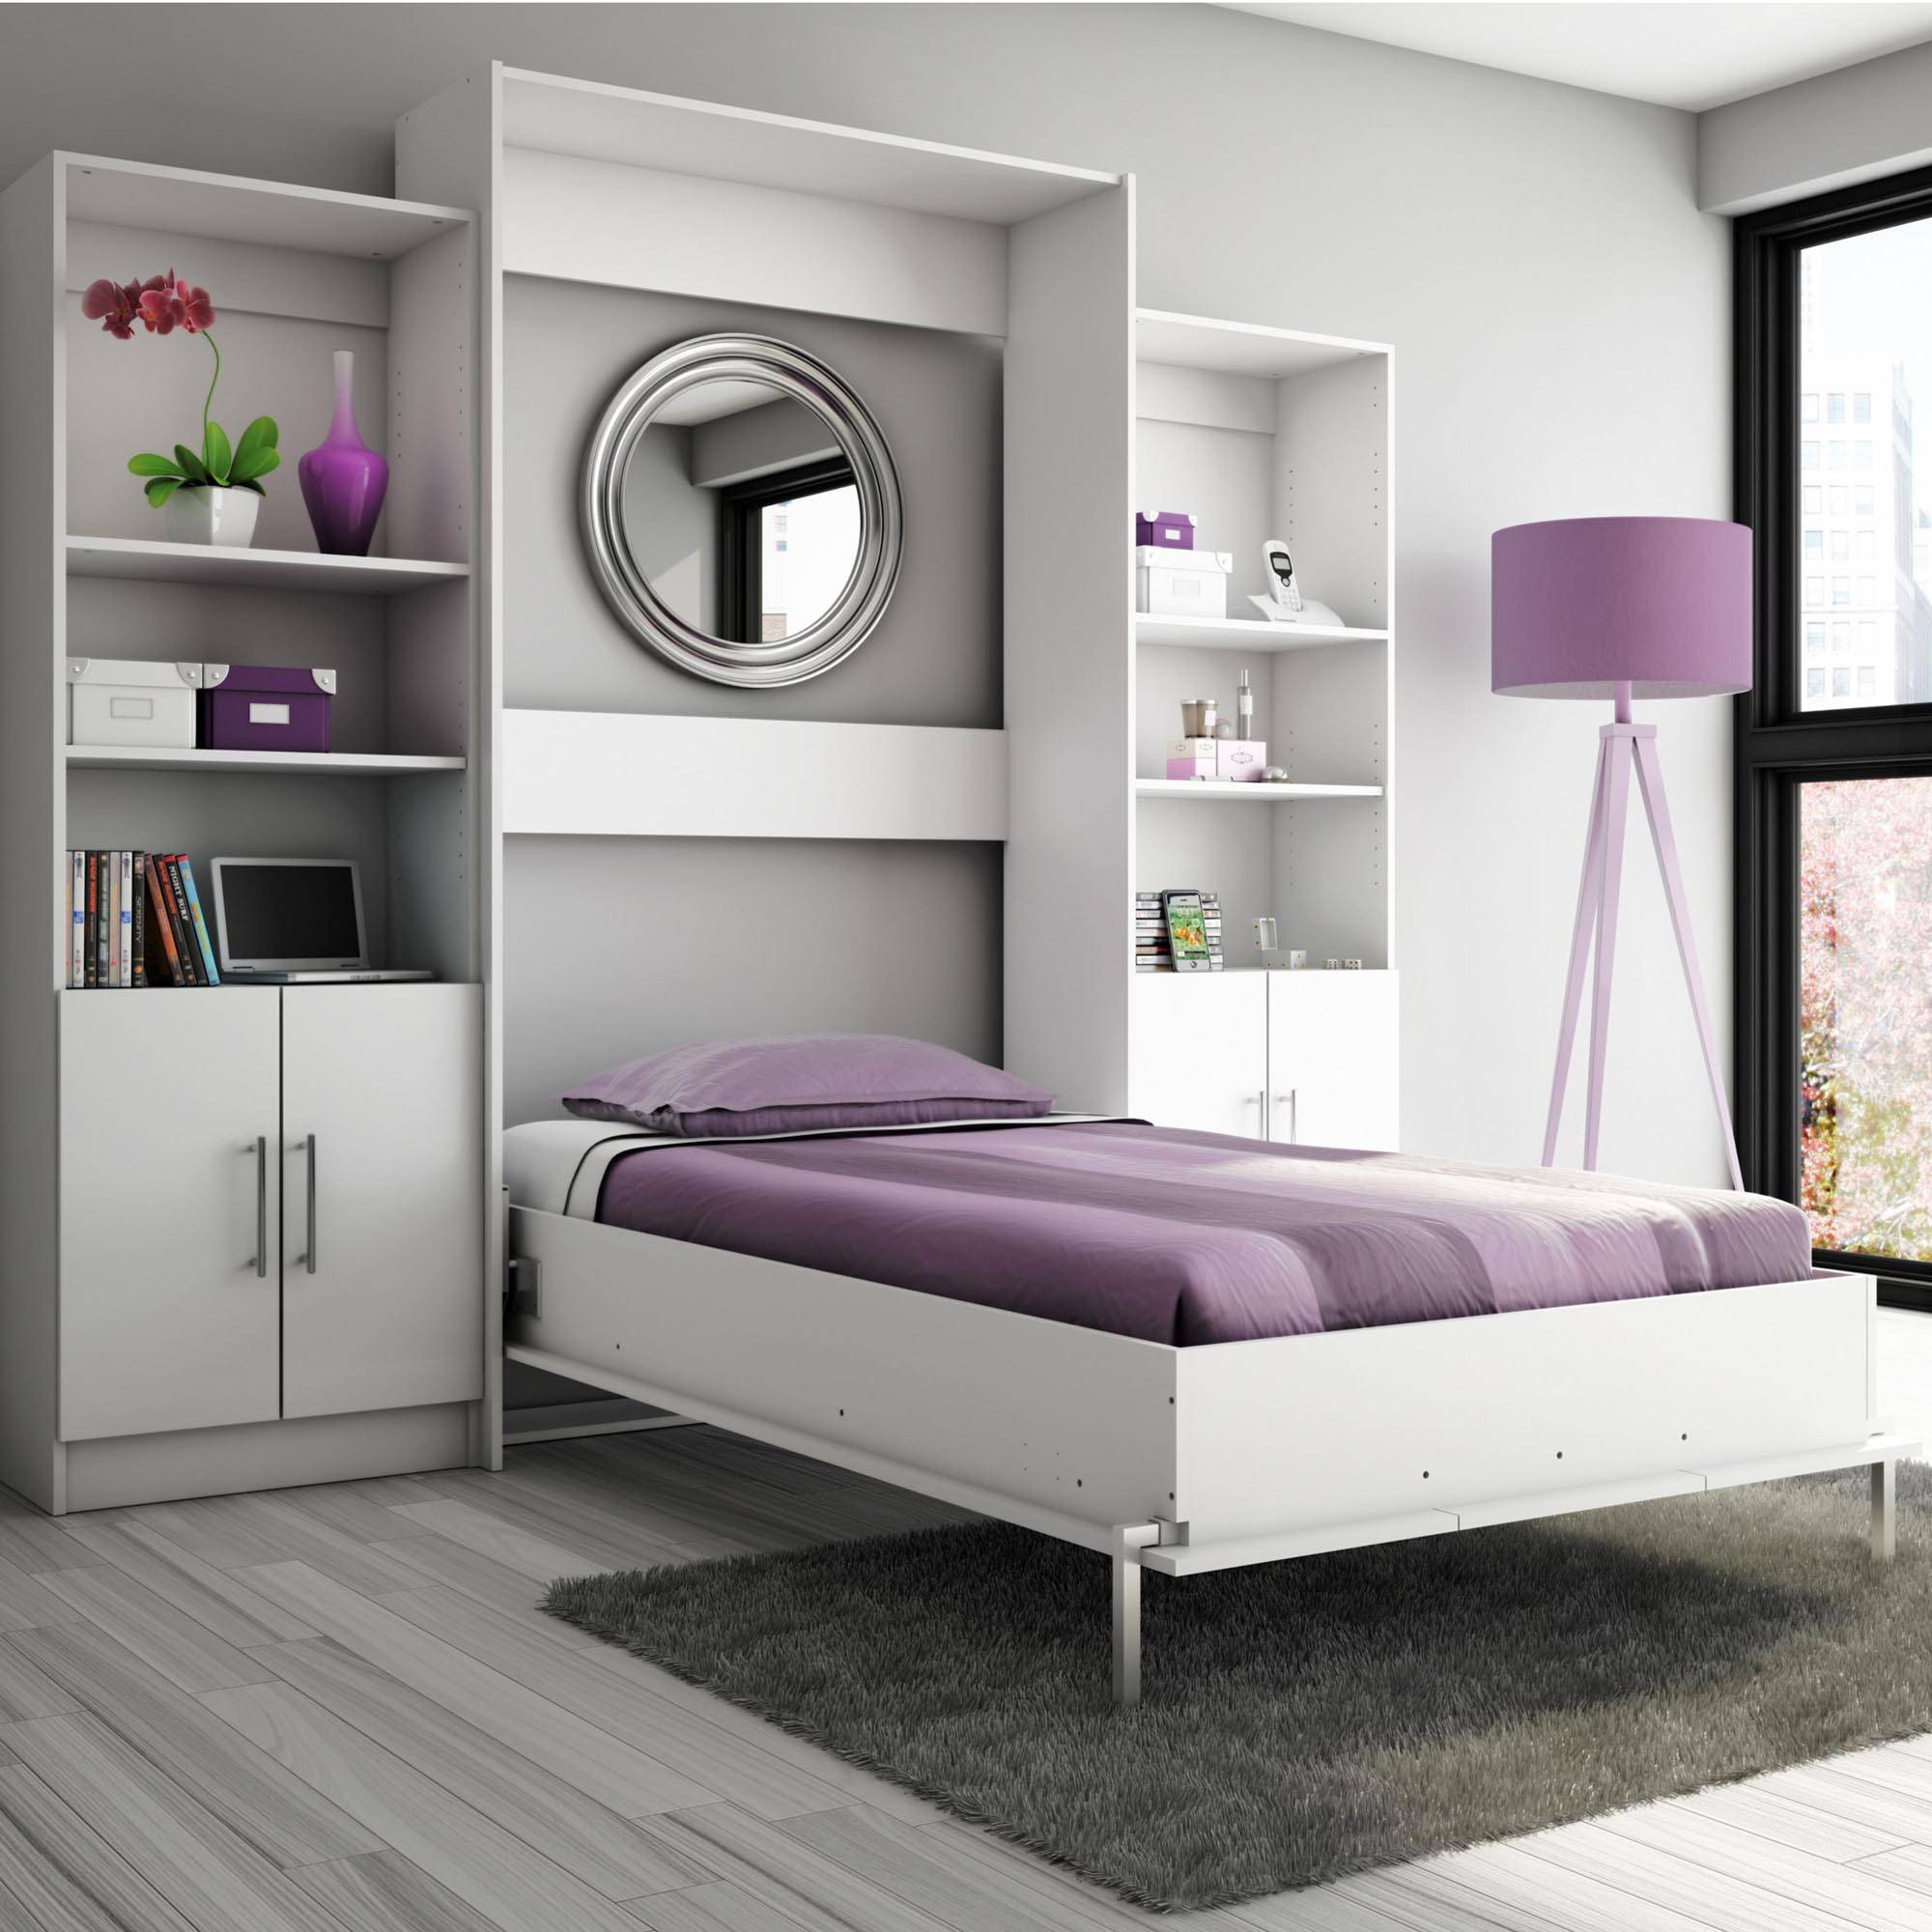 Marvelous Design The Grey Wooden Floor Ideas Added With Grey Wall And Purple Modern Murphy Bed Ideas